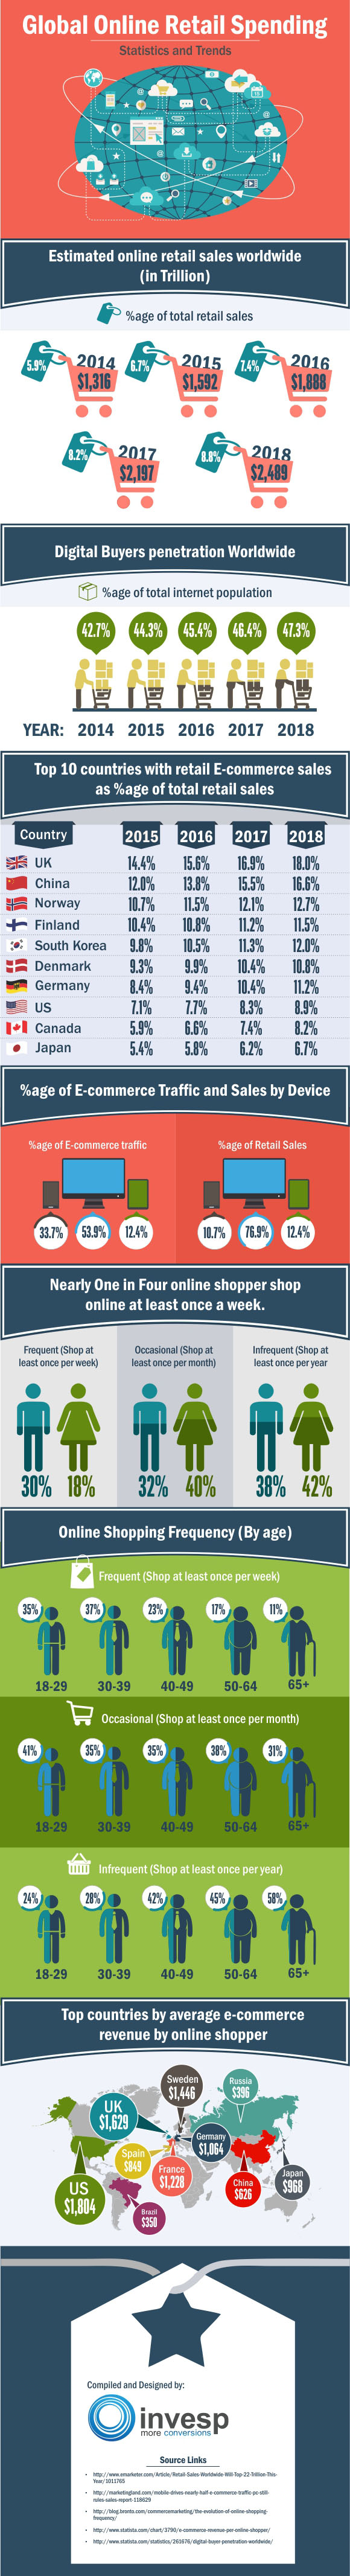 global online retail spending statistics and trends infographic